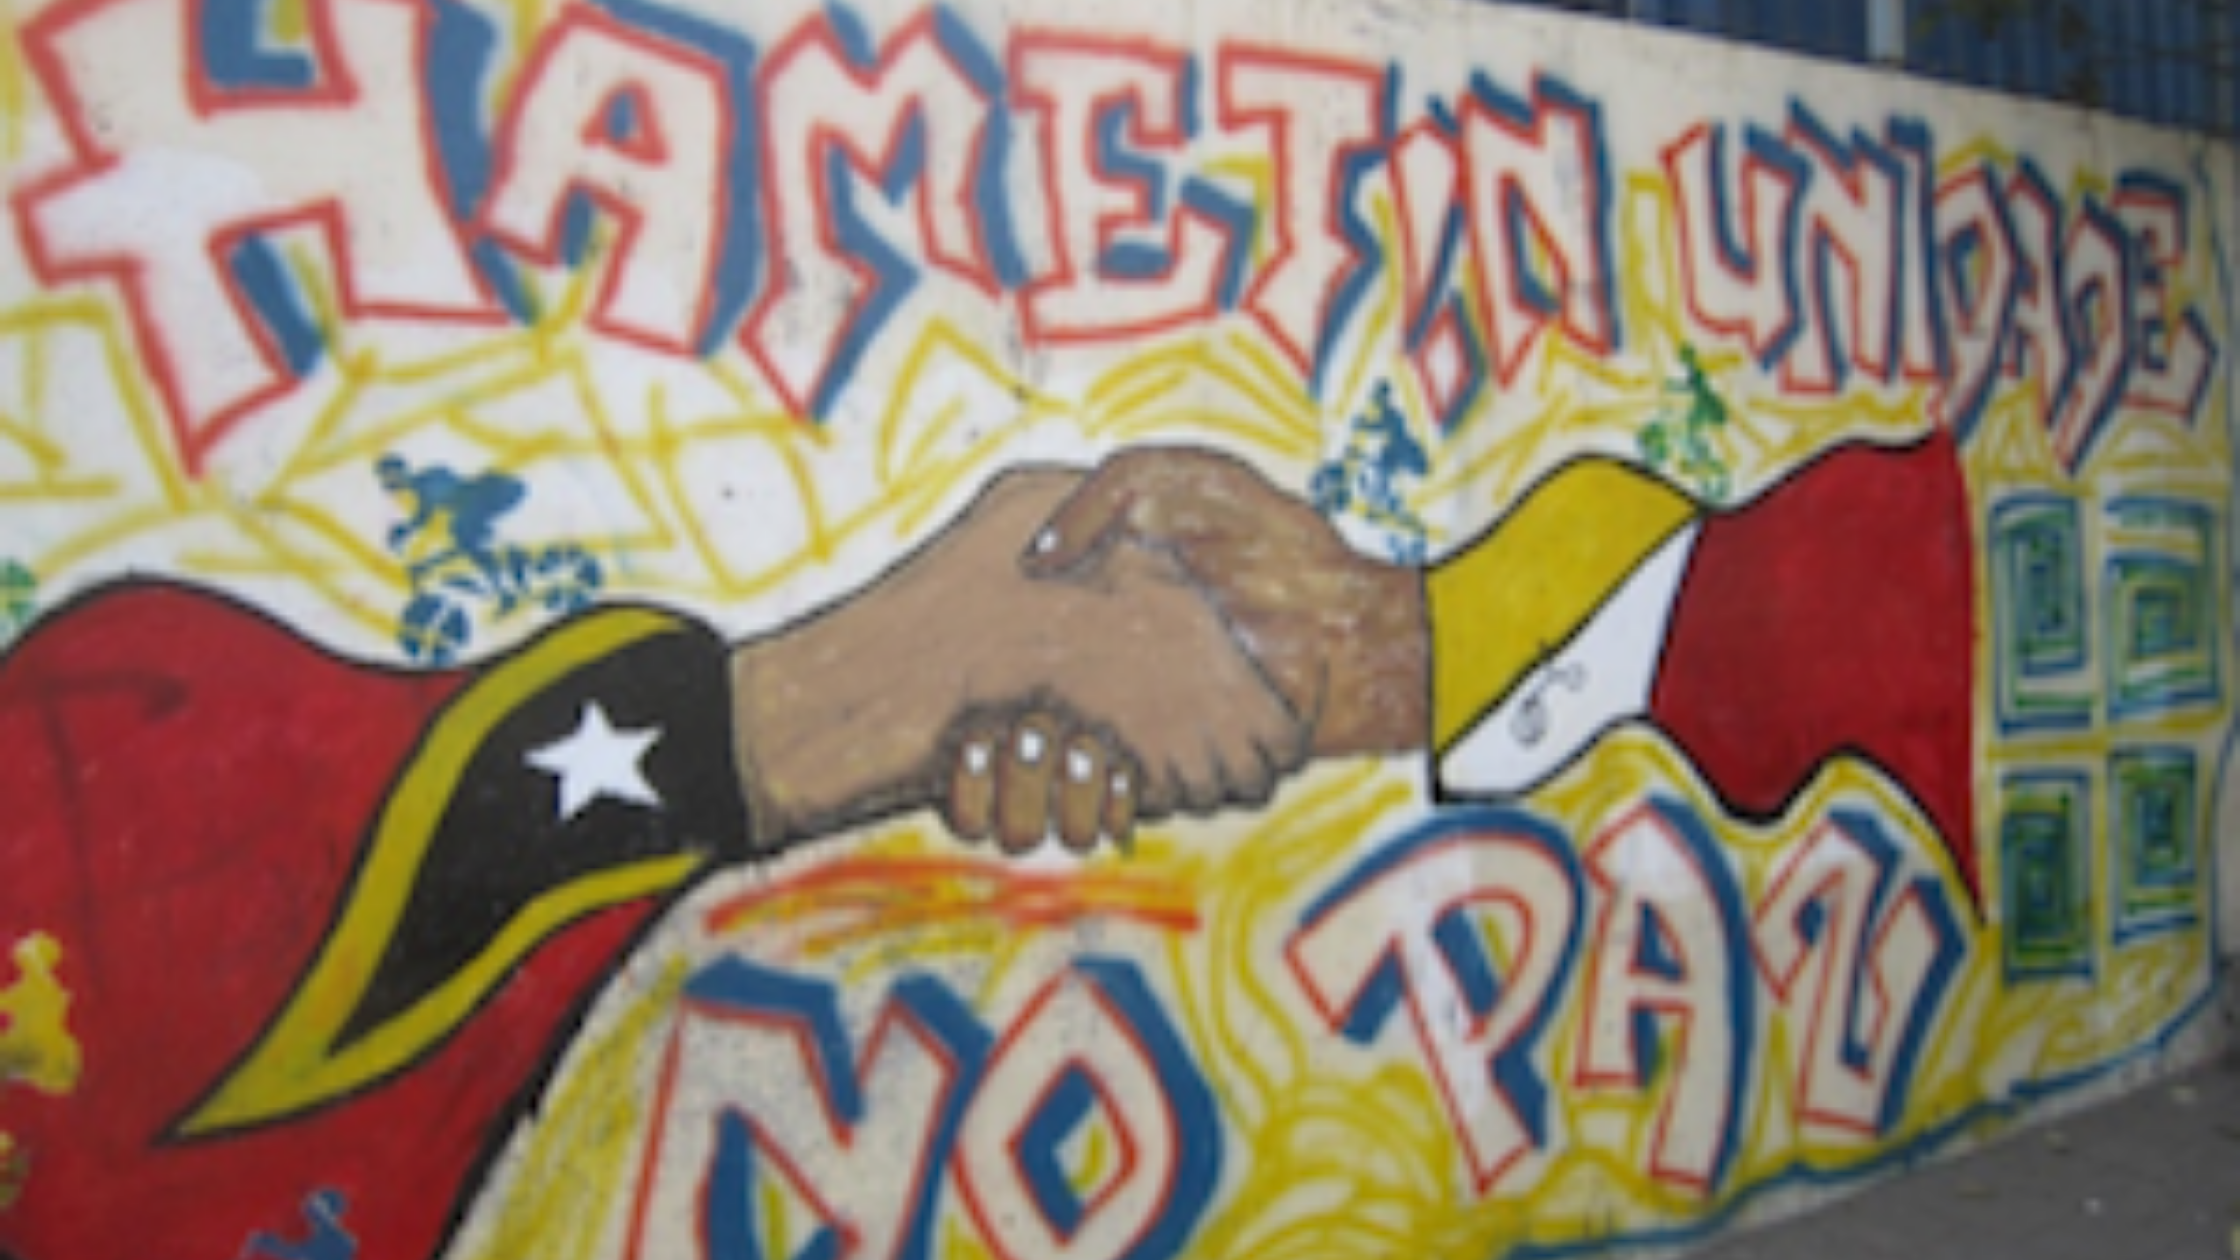 You are currently viewing Graffiti as Arts Activism in Peacebuilding